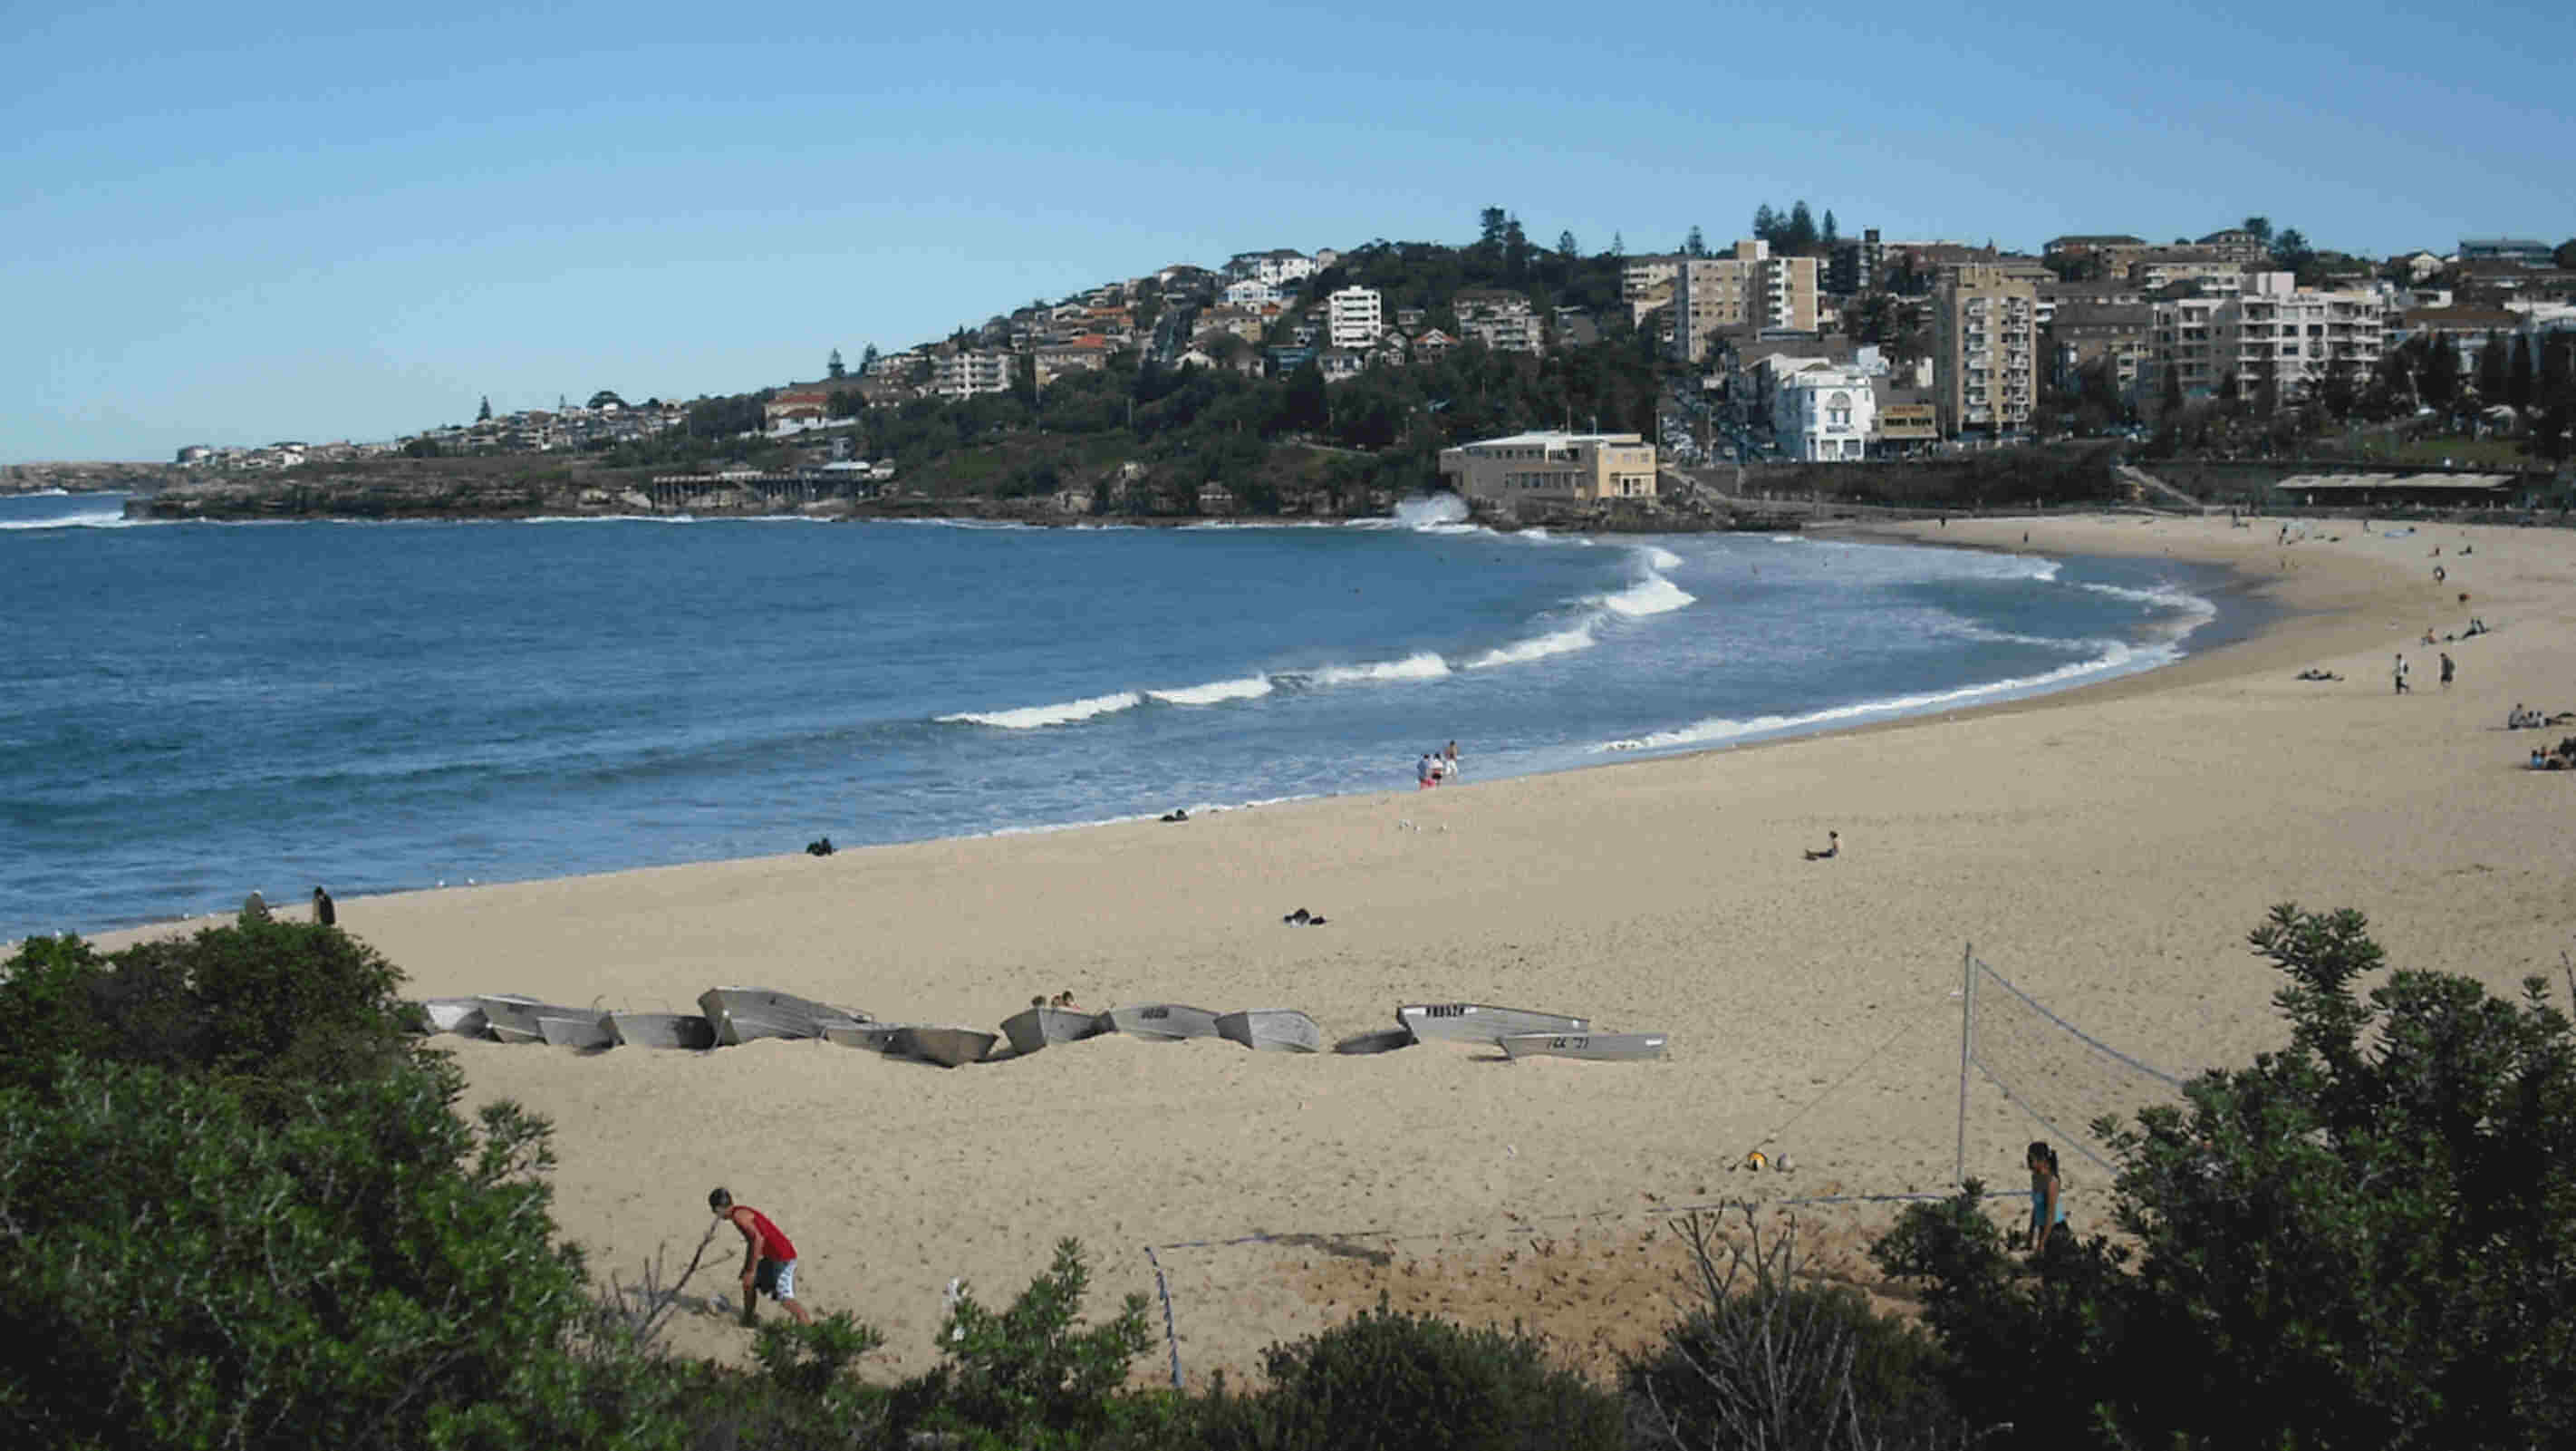 winter's silver sunshine on coogee beach june 2011 - view image to enlarge